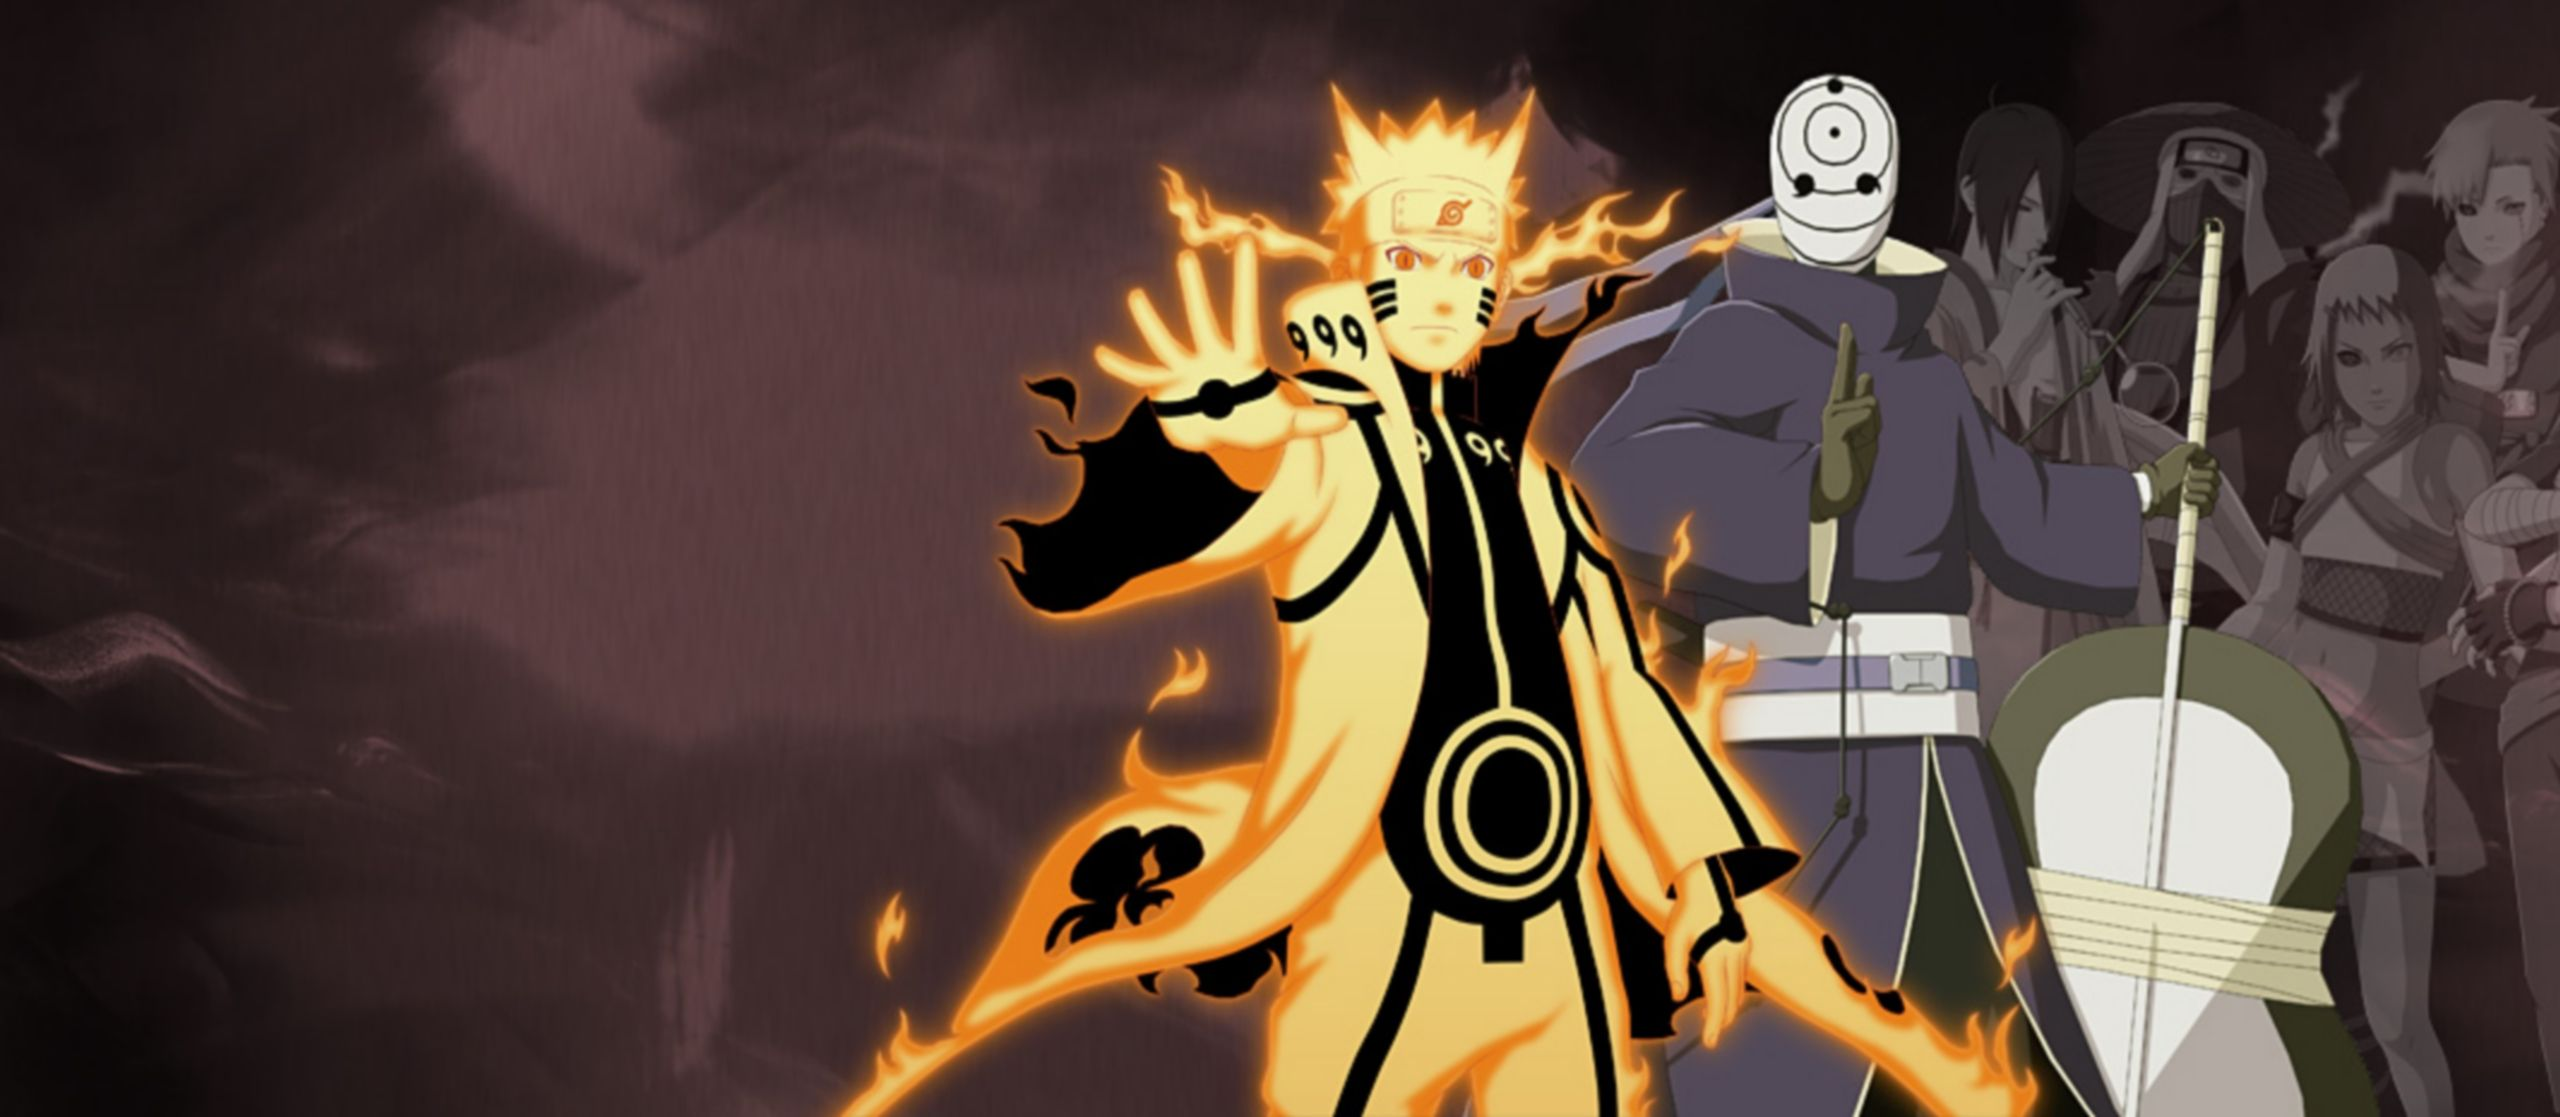 Popular Wallpaper Naruto Note 4 - 6d9a58a61b7acf8f8d90da0eb1f7c687  You Should Have_413214.jpg